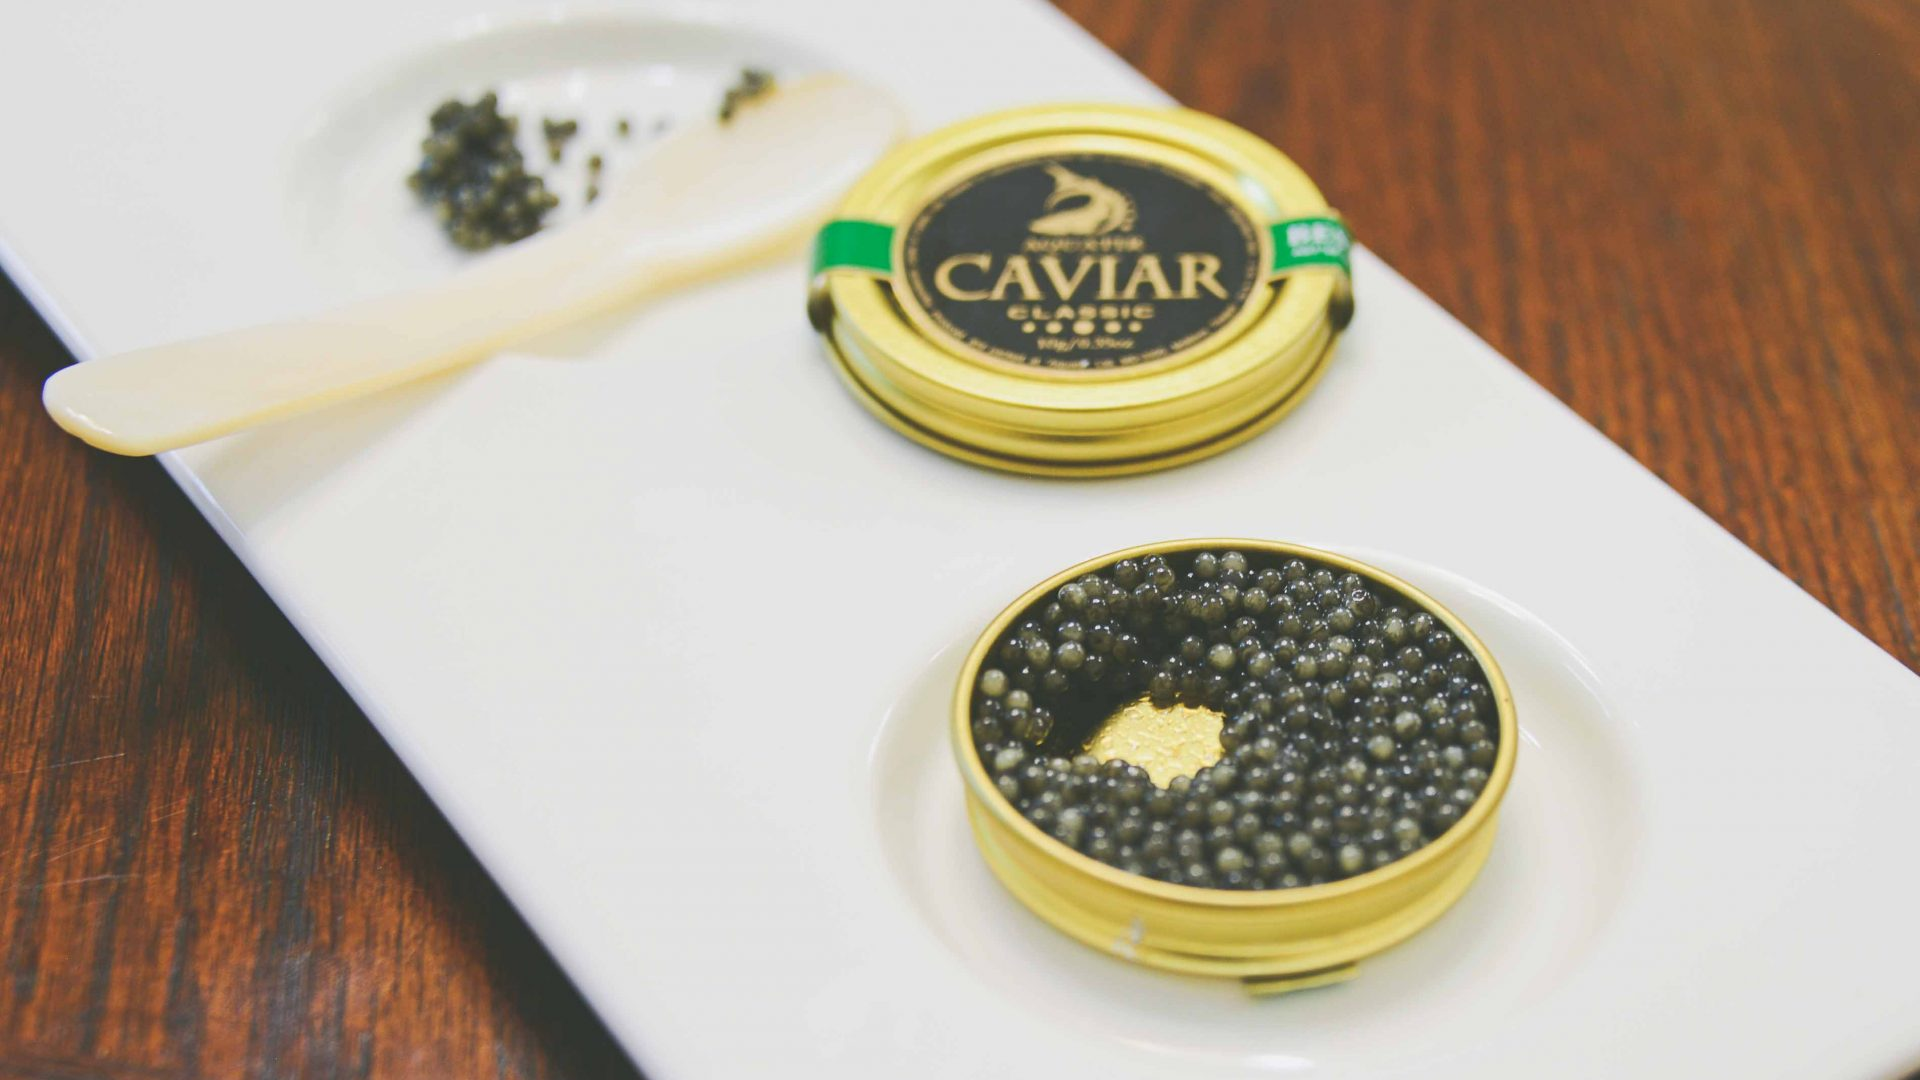 Caviar is an important export in Transnistria.